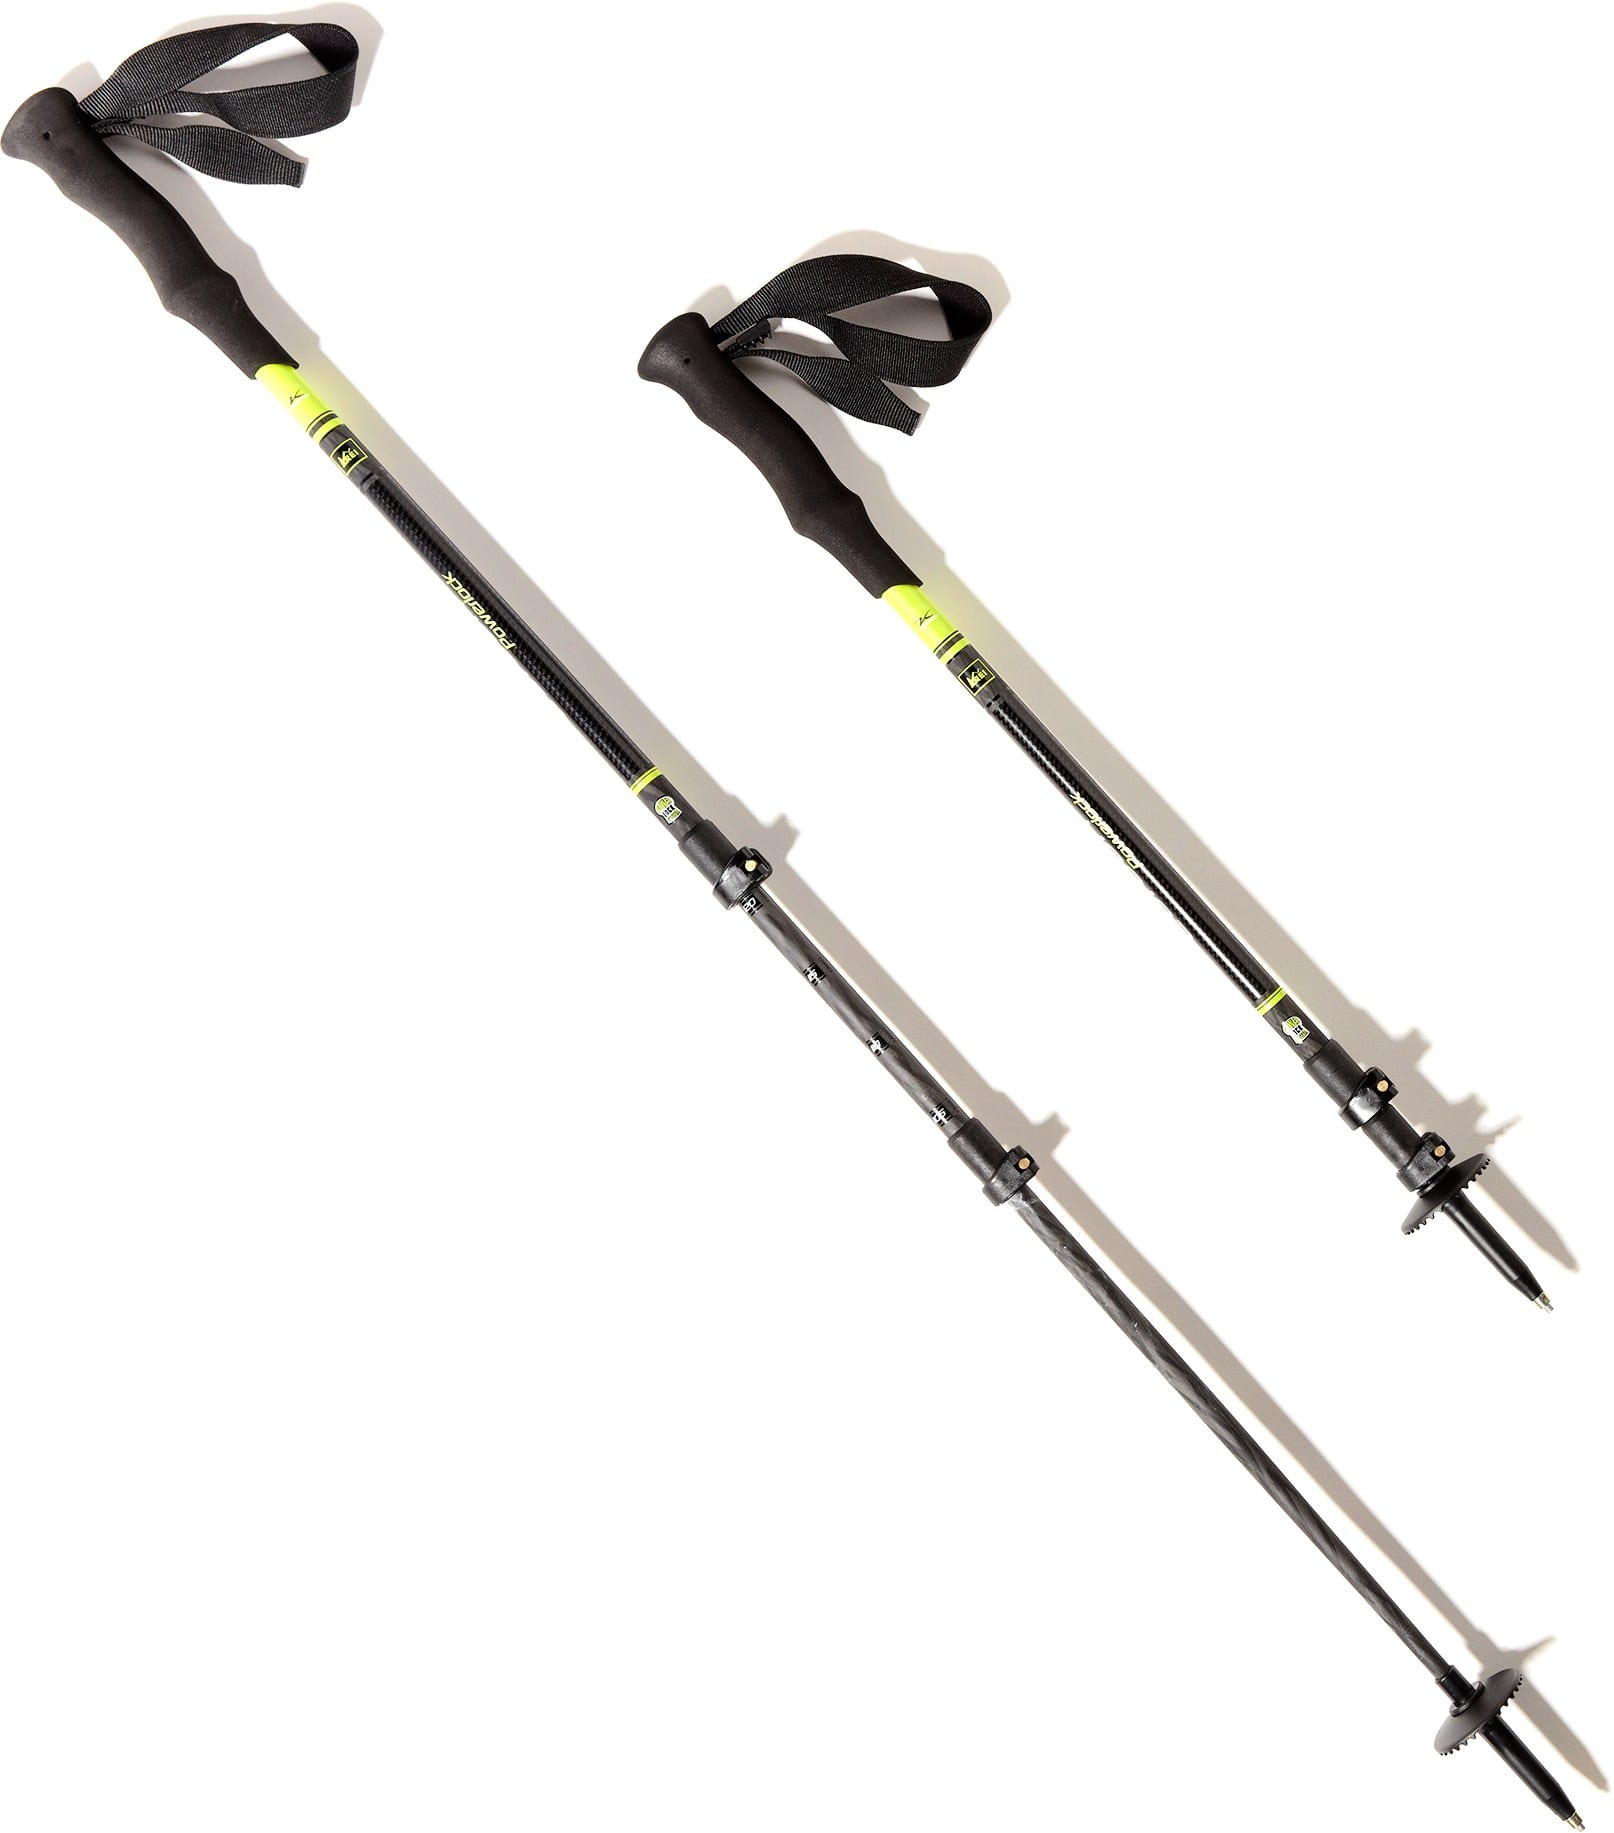 REI Carbon Power Lock Trekking Poles